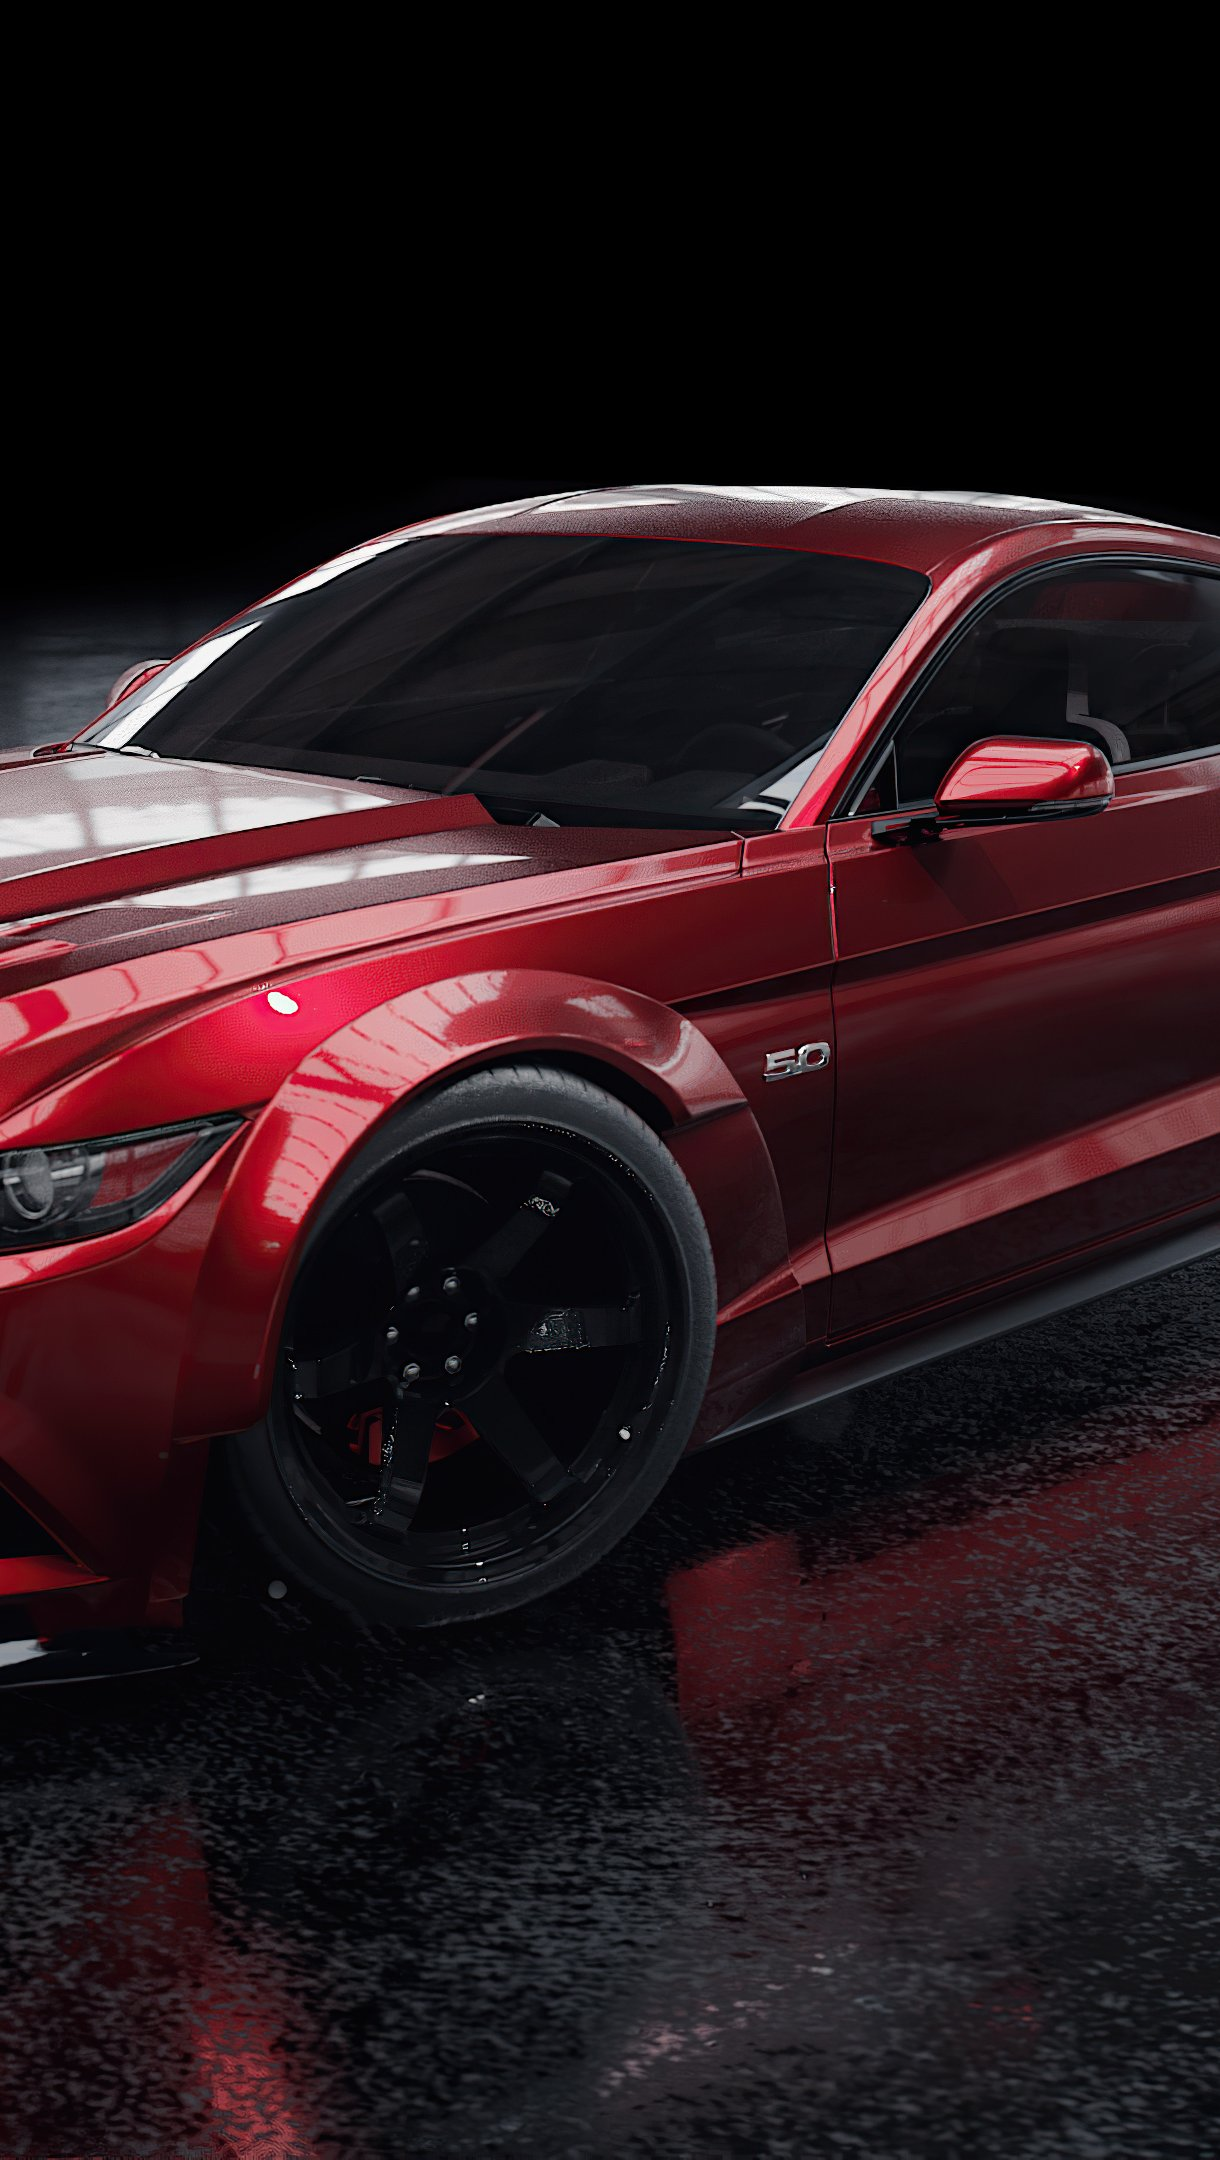 Red Ford Mustang Wallpaper 4k Ultra Hd Id 6338